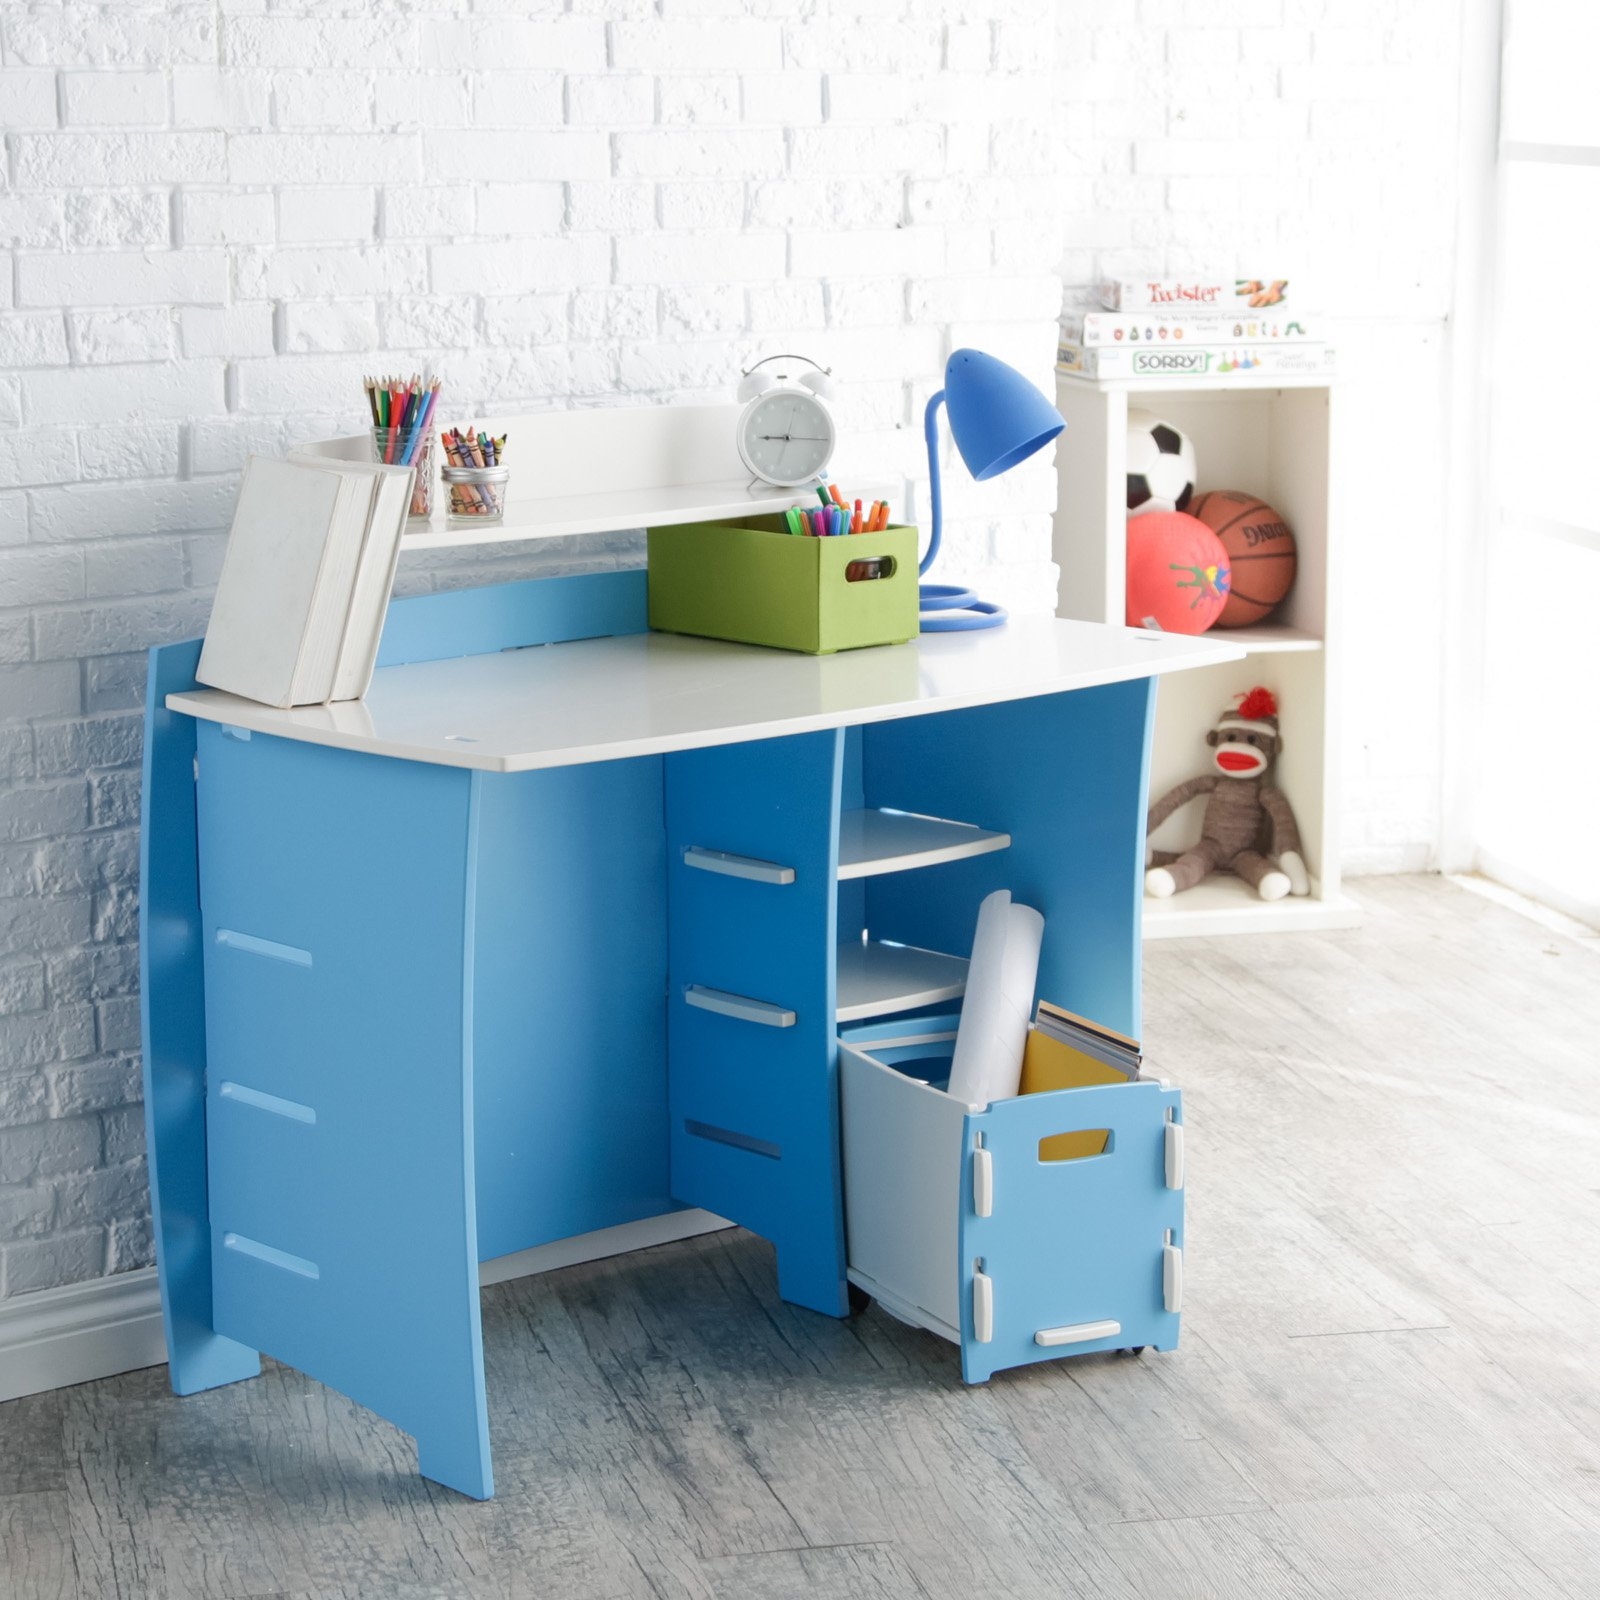 Legare 43 in. Desk with Shelf and File Cart - Blue and White